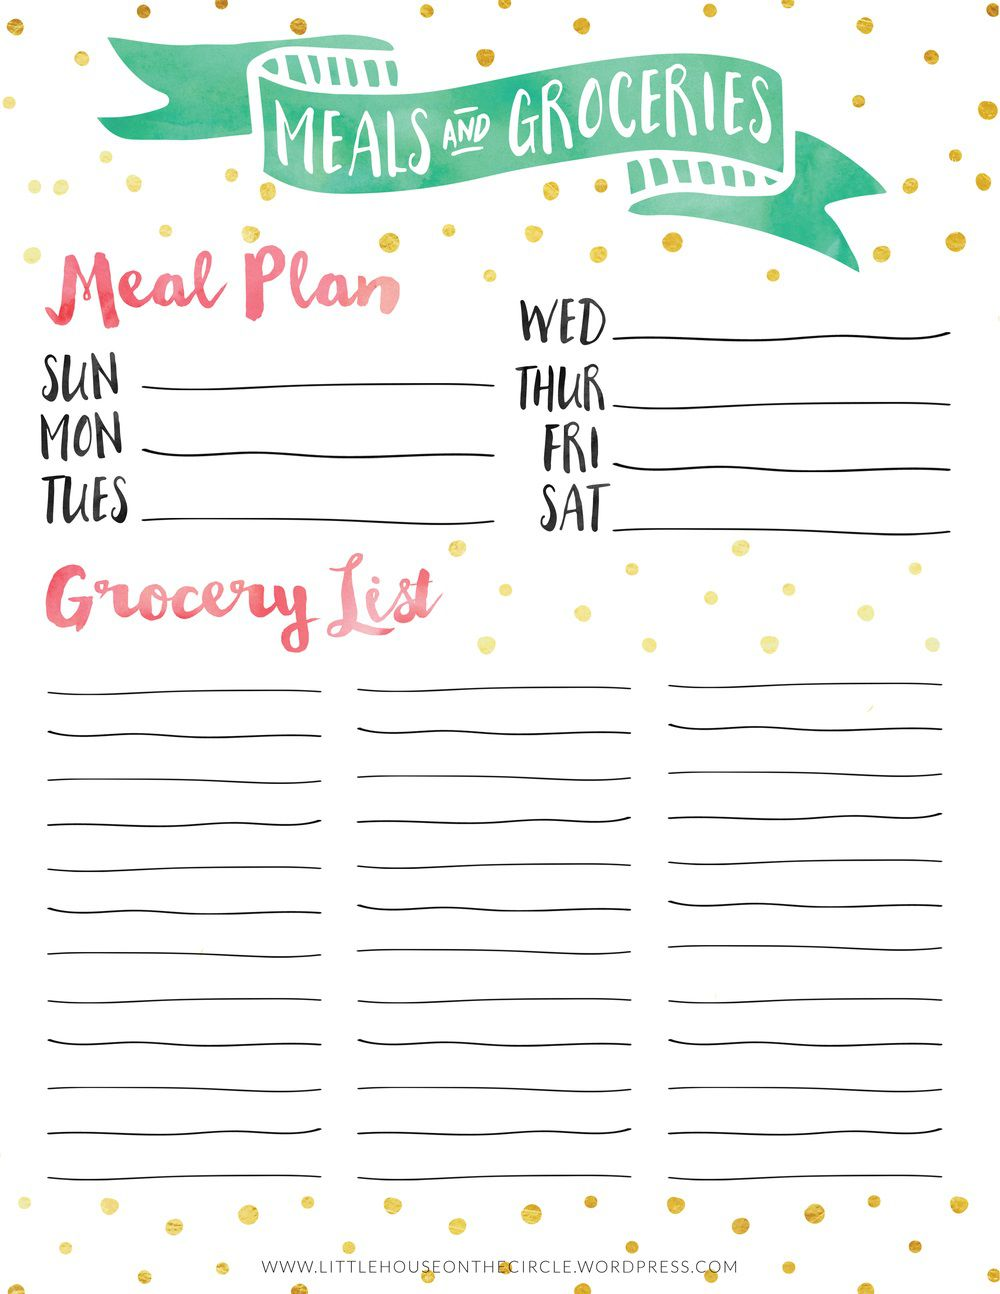 005 Dreaded Meal Plan With Printable Grocery List Inspiration  Planning Template Excel FreeFull